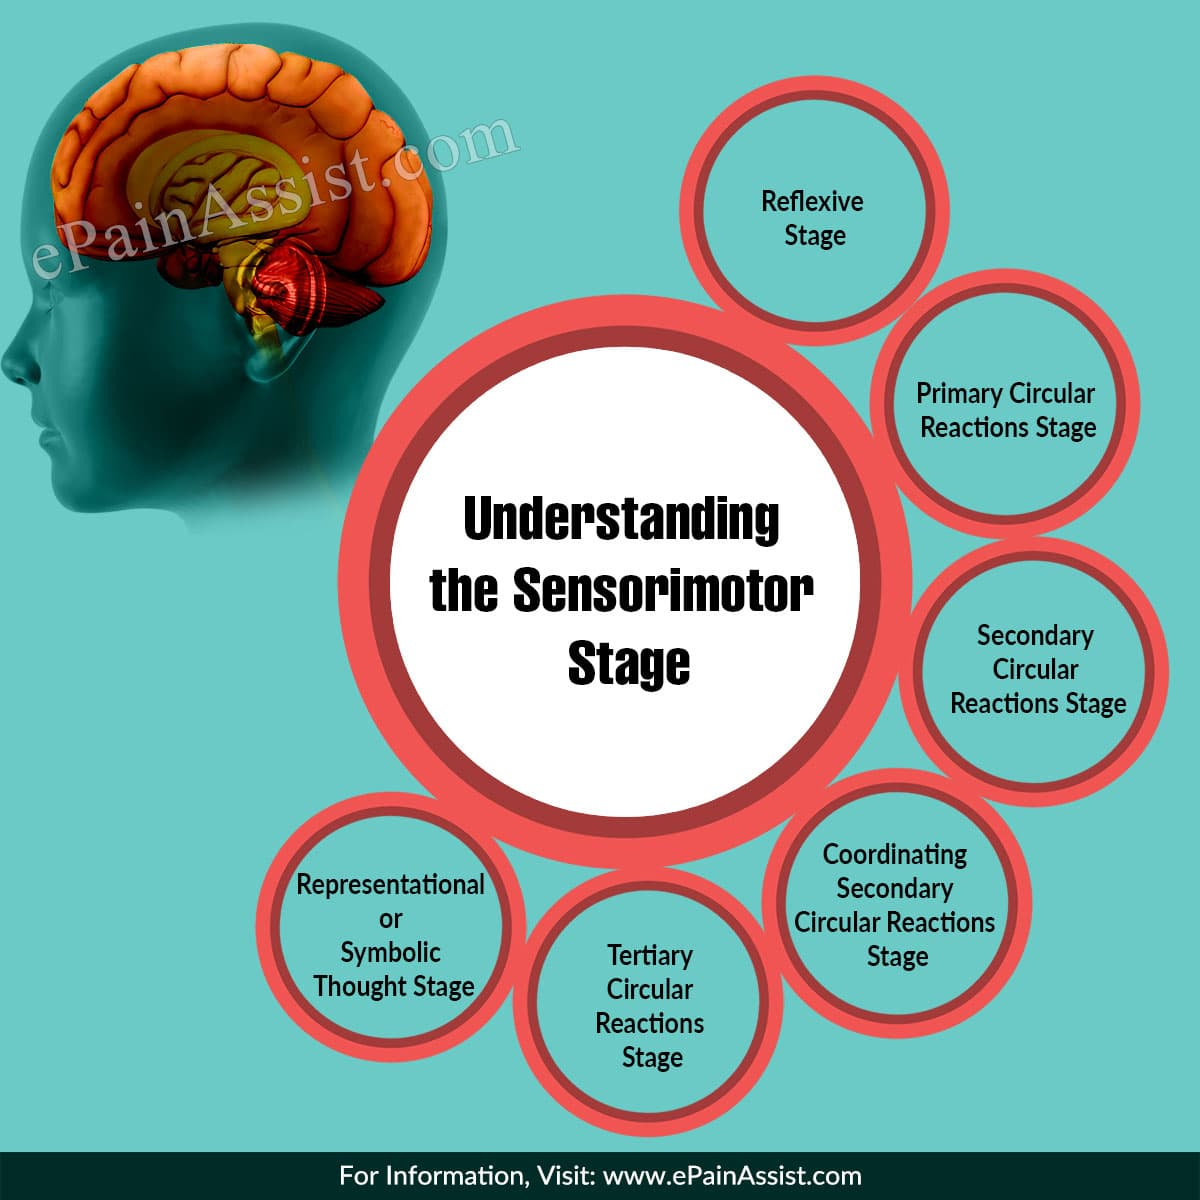 Understanding the Sensorimotor Stage